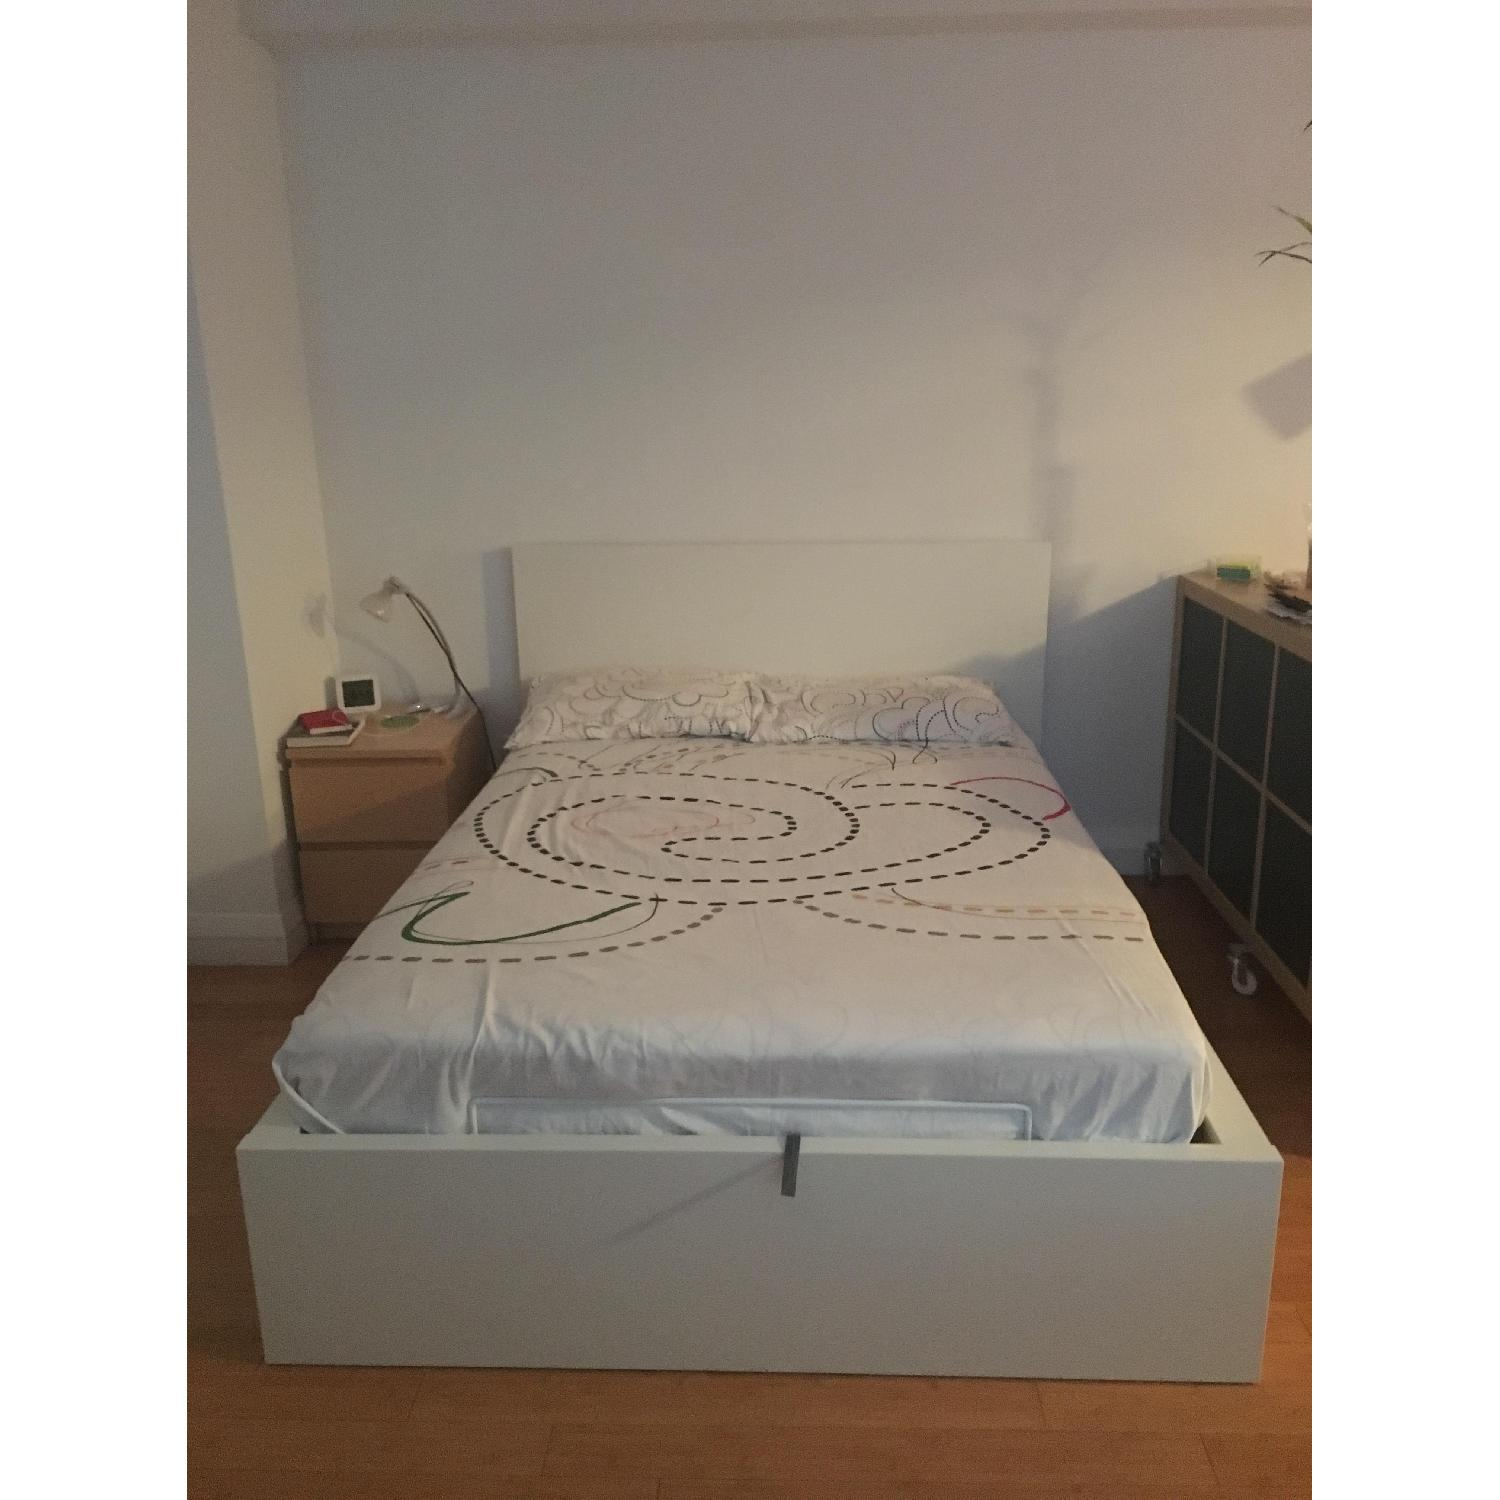 ikea malm fulldouble storage bed - Storage Beds Full